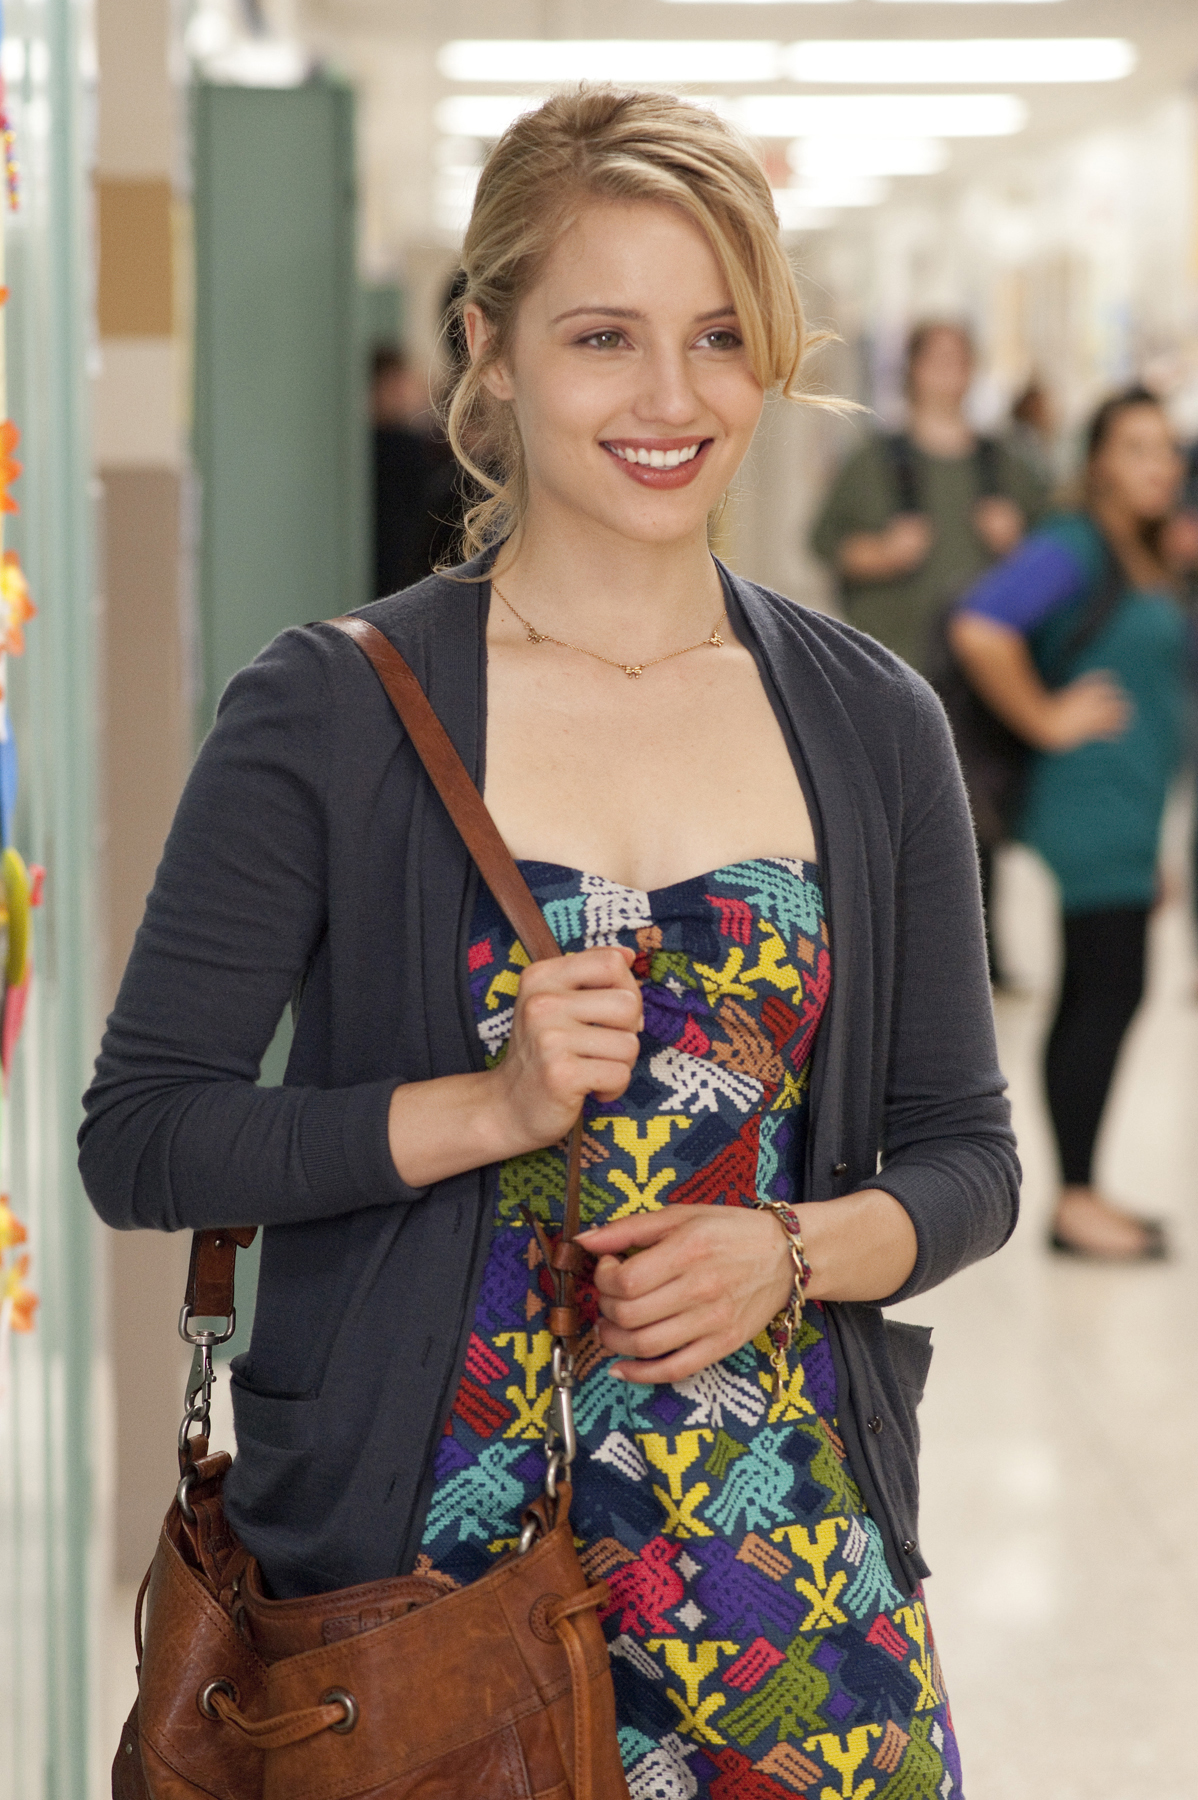 image - dianna-agron-i-am-number-four-image | the lorien